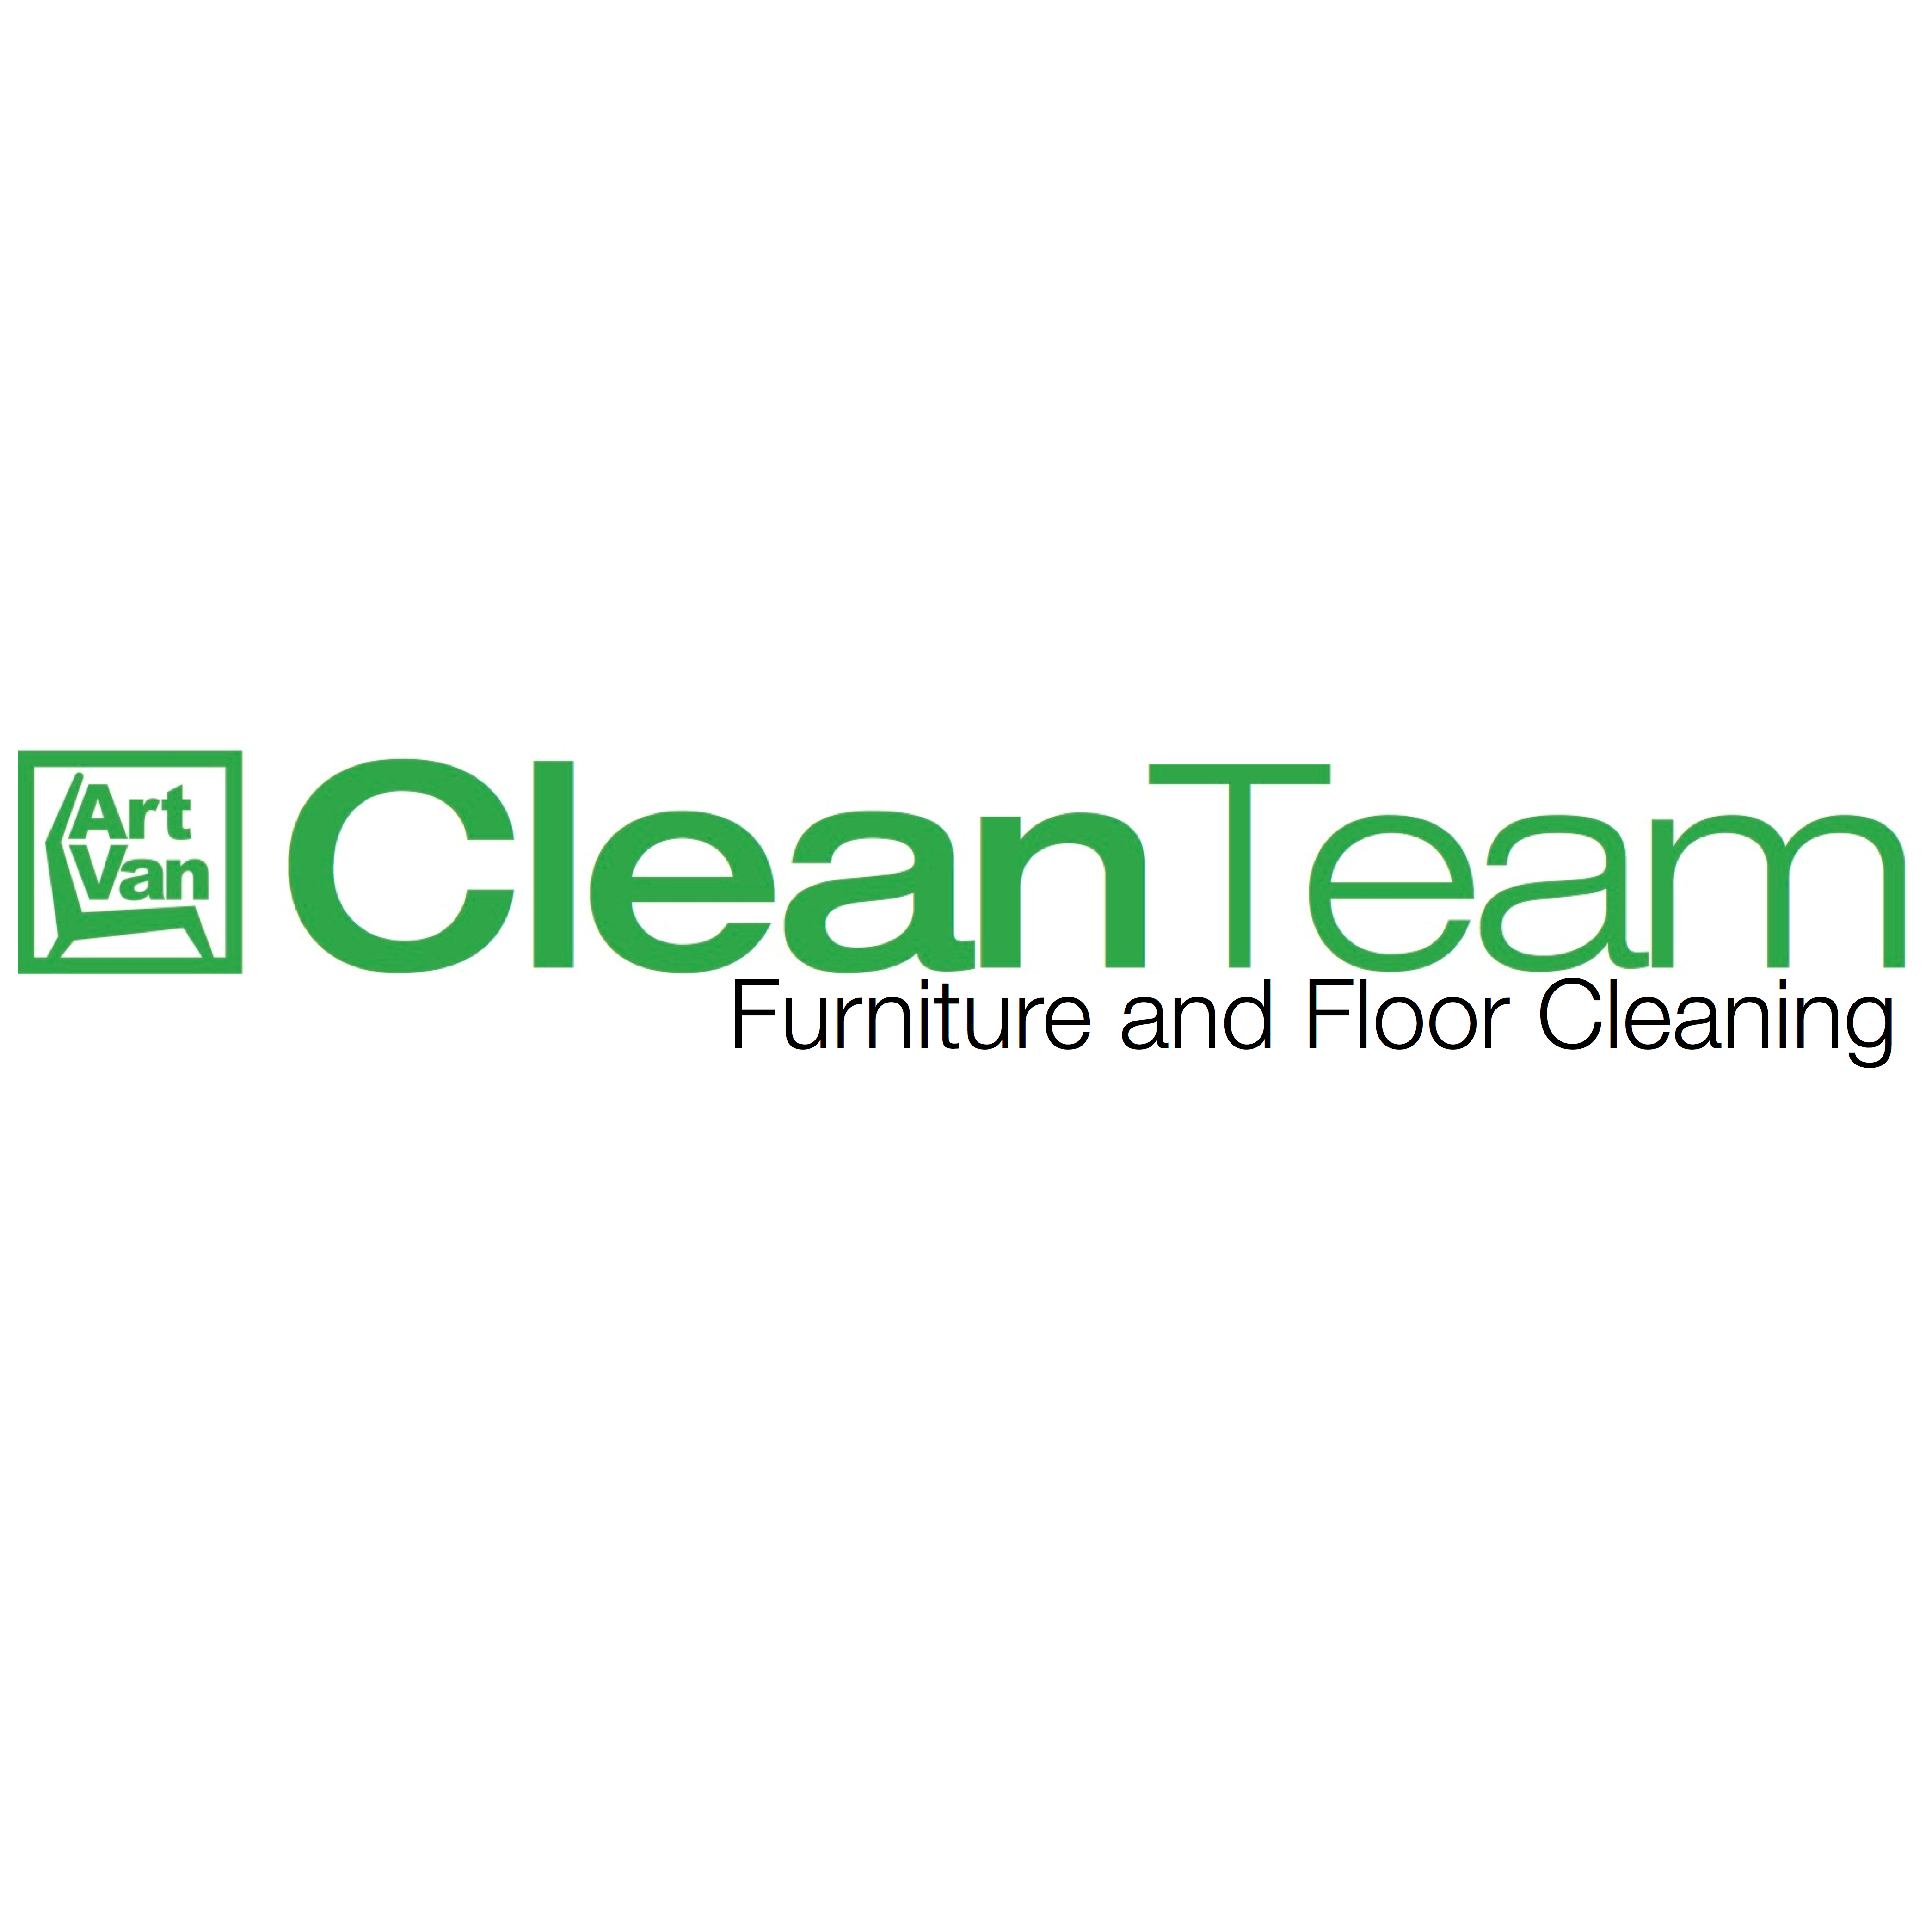 Art Van Clean Team